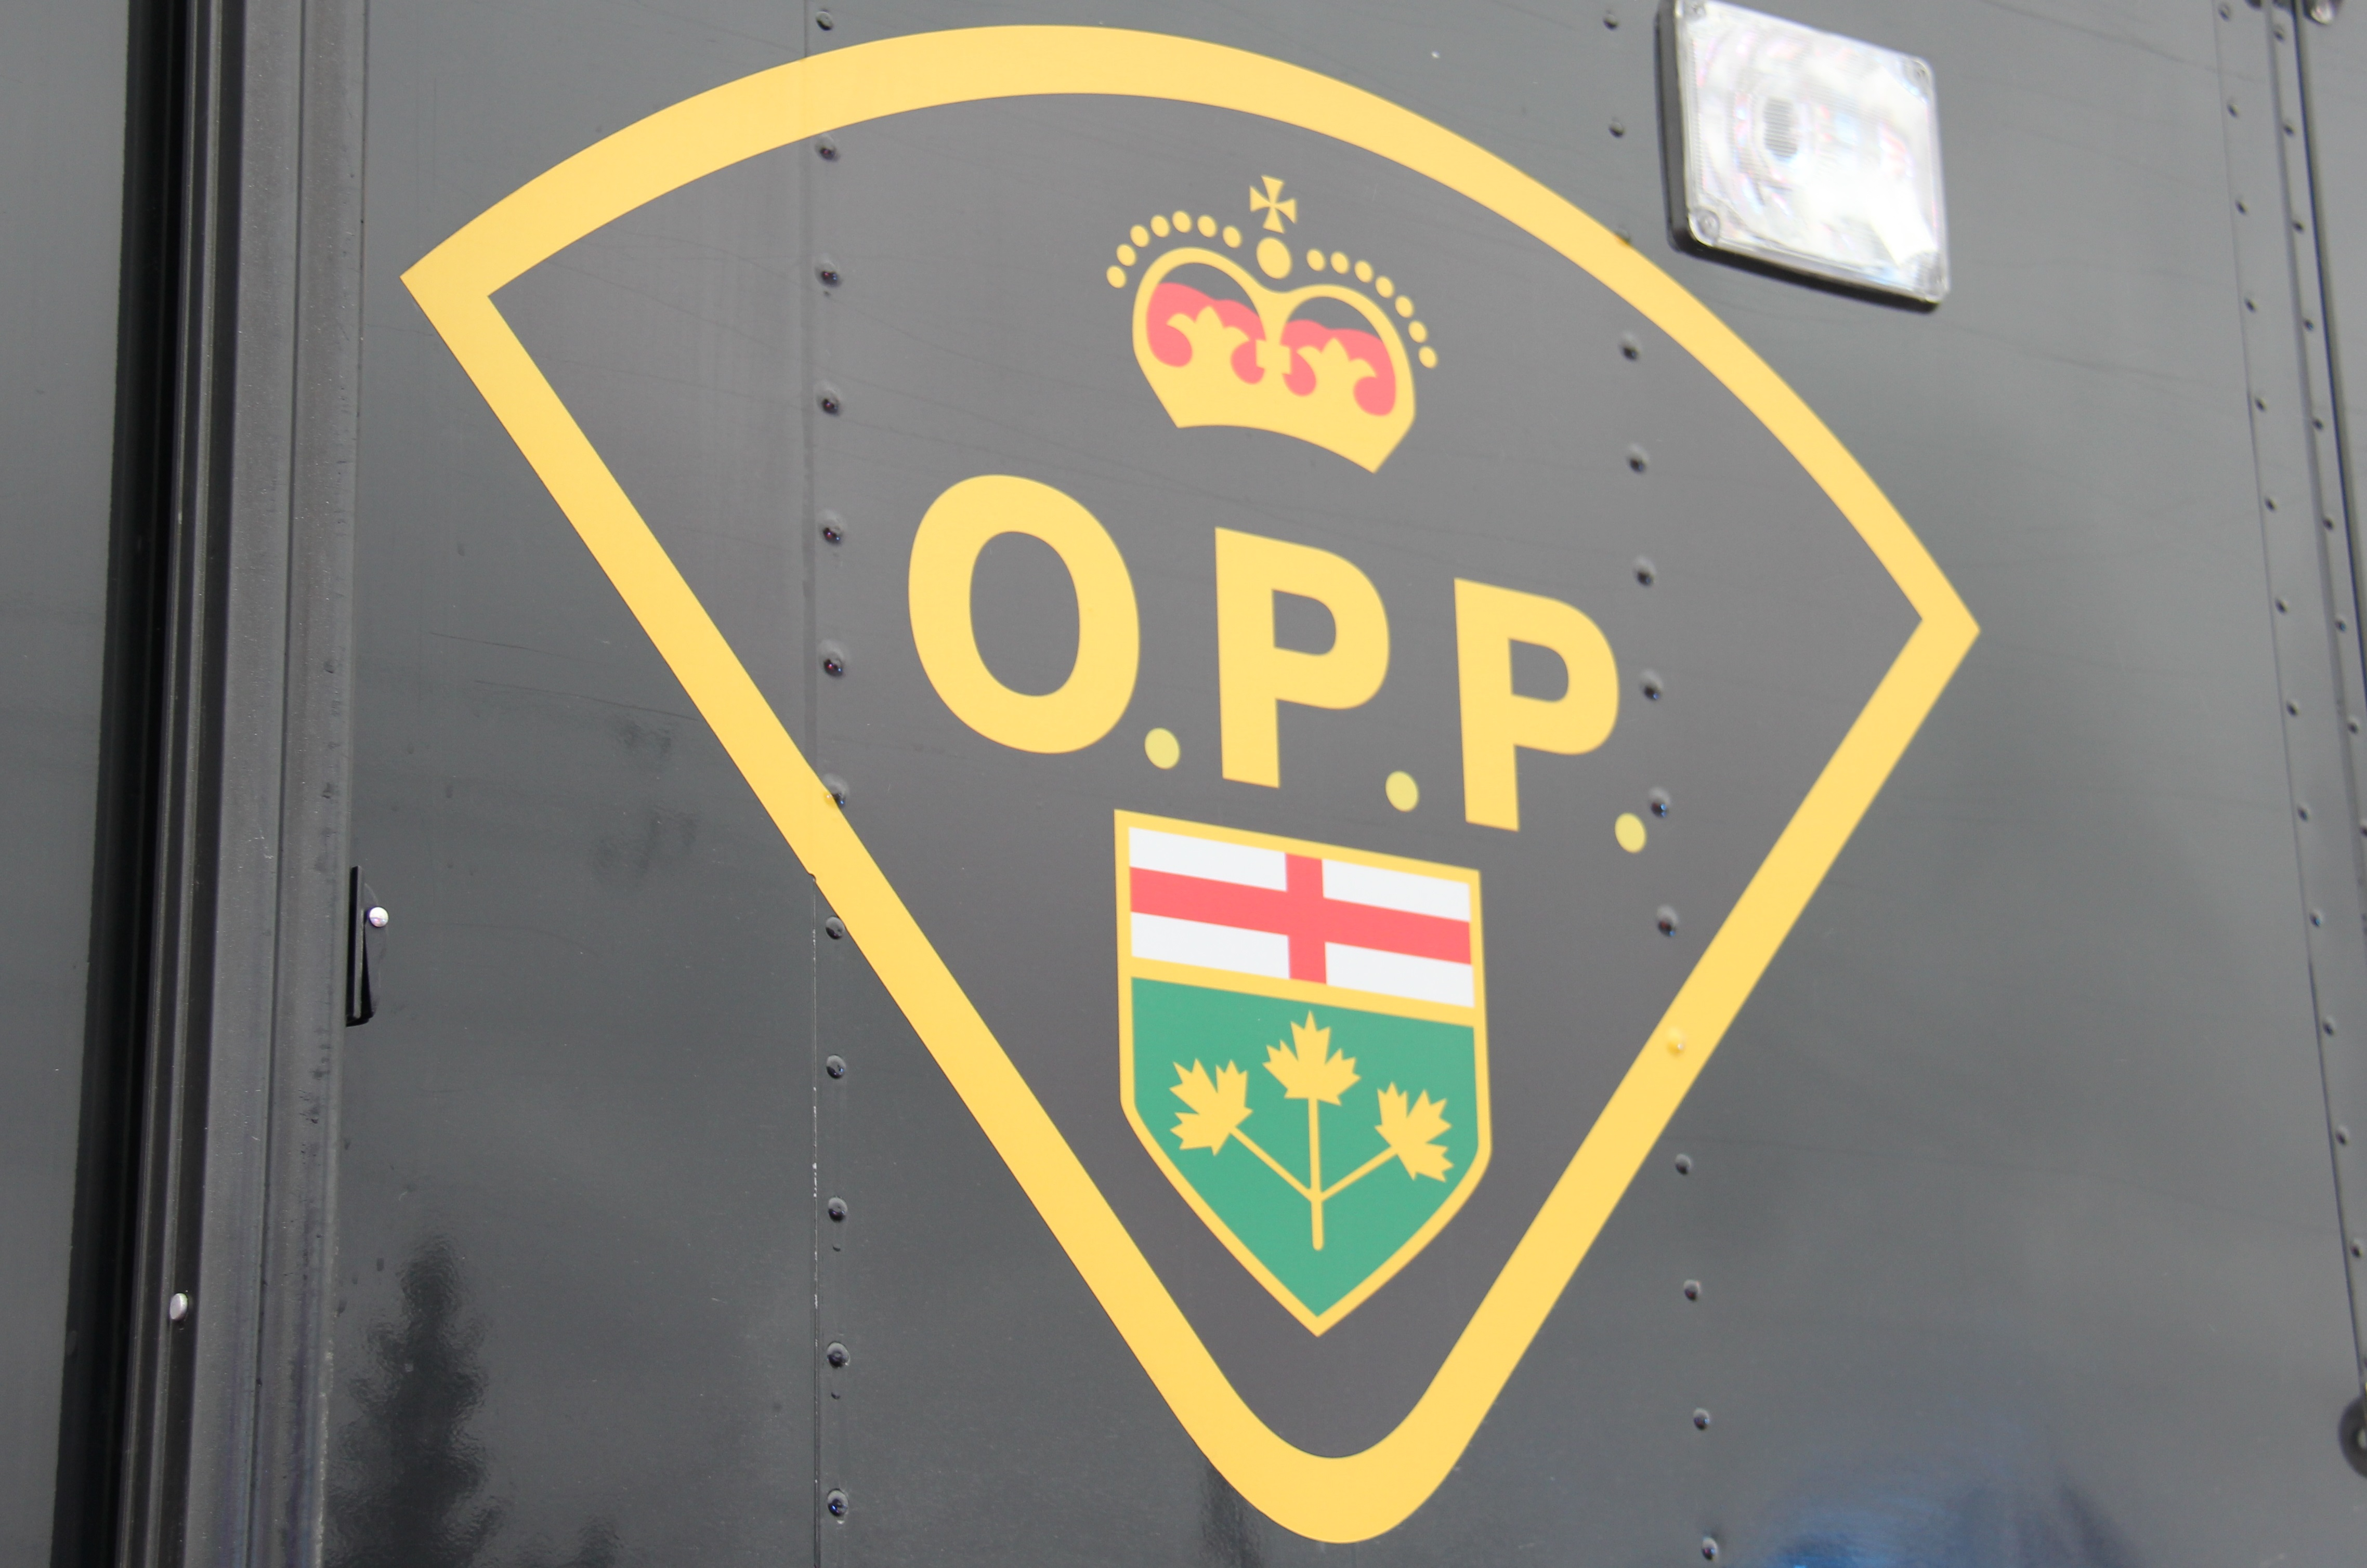 Collision slows Highway 17 traffic (update: Hwy open